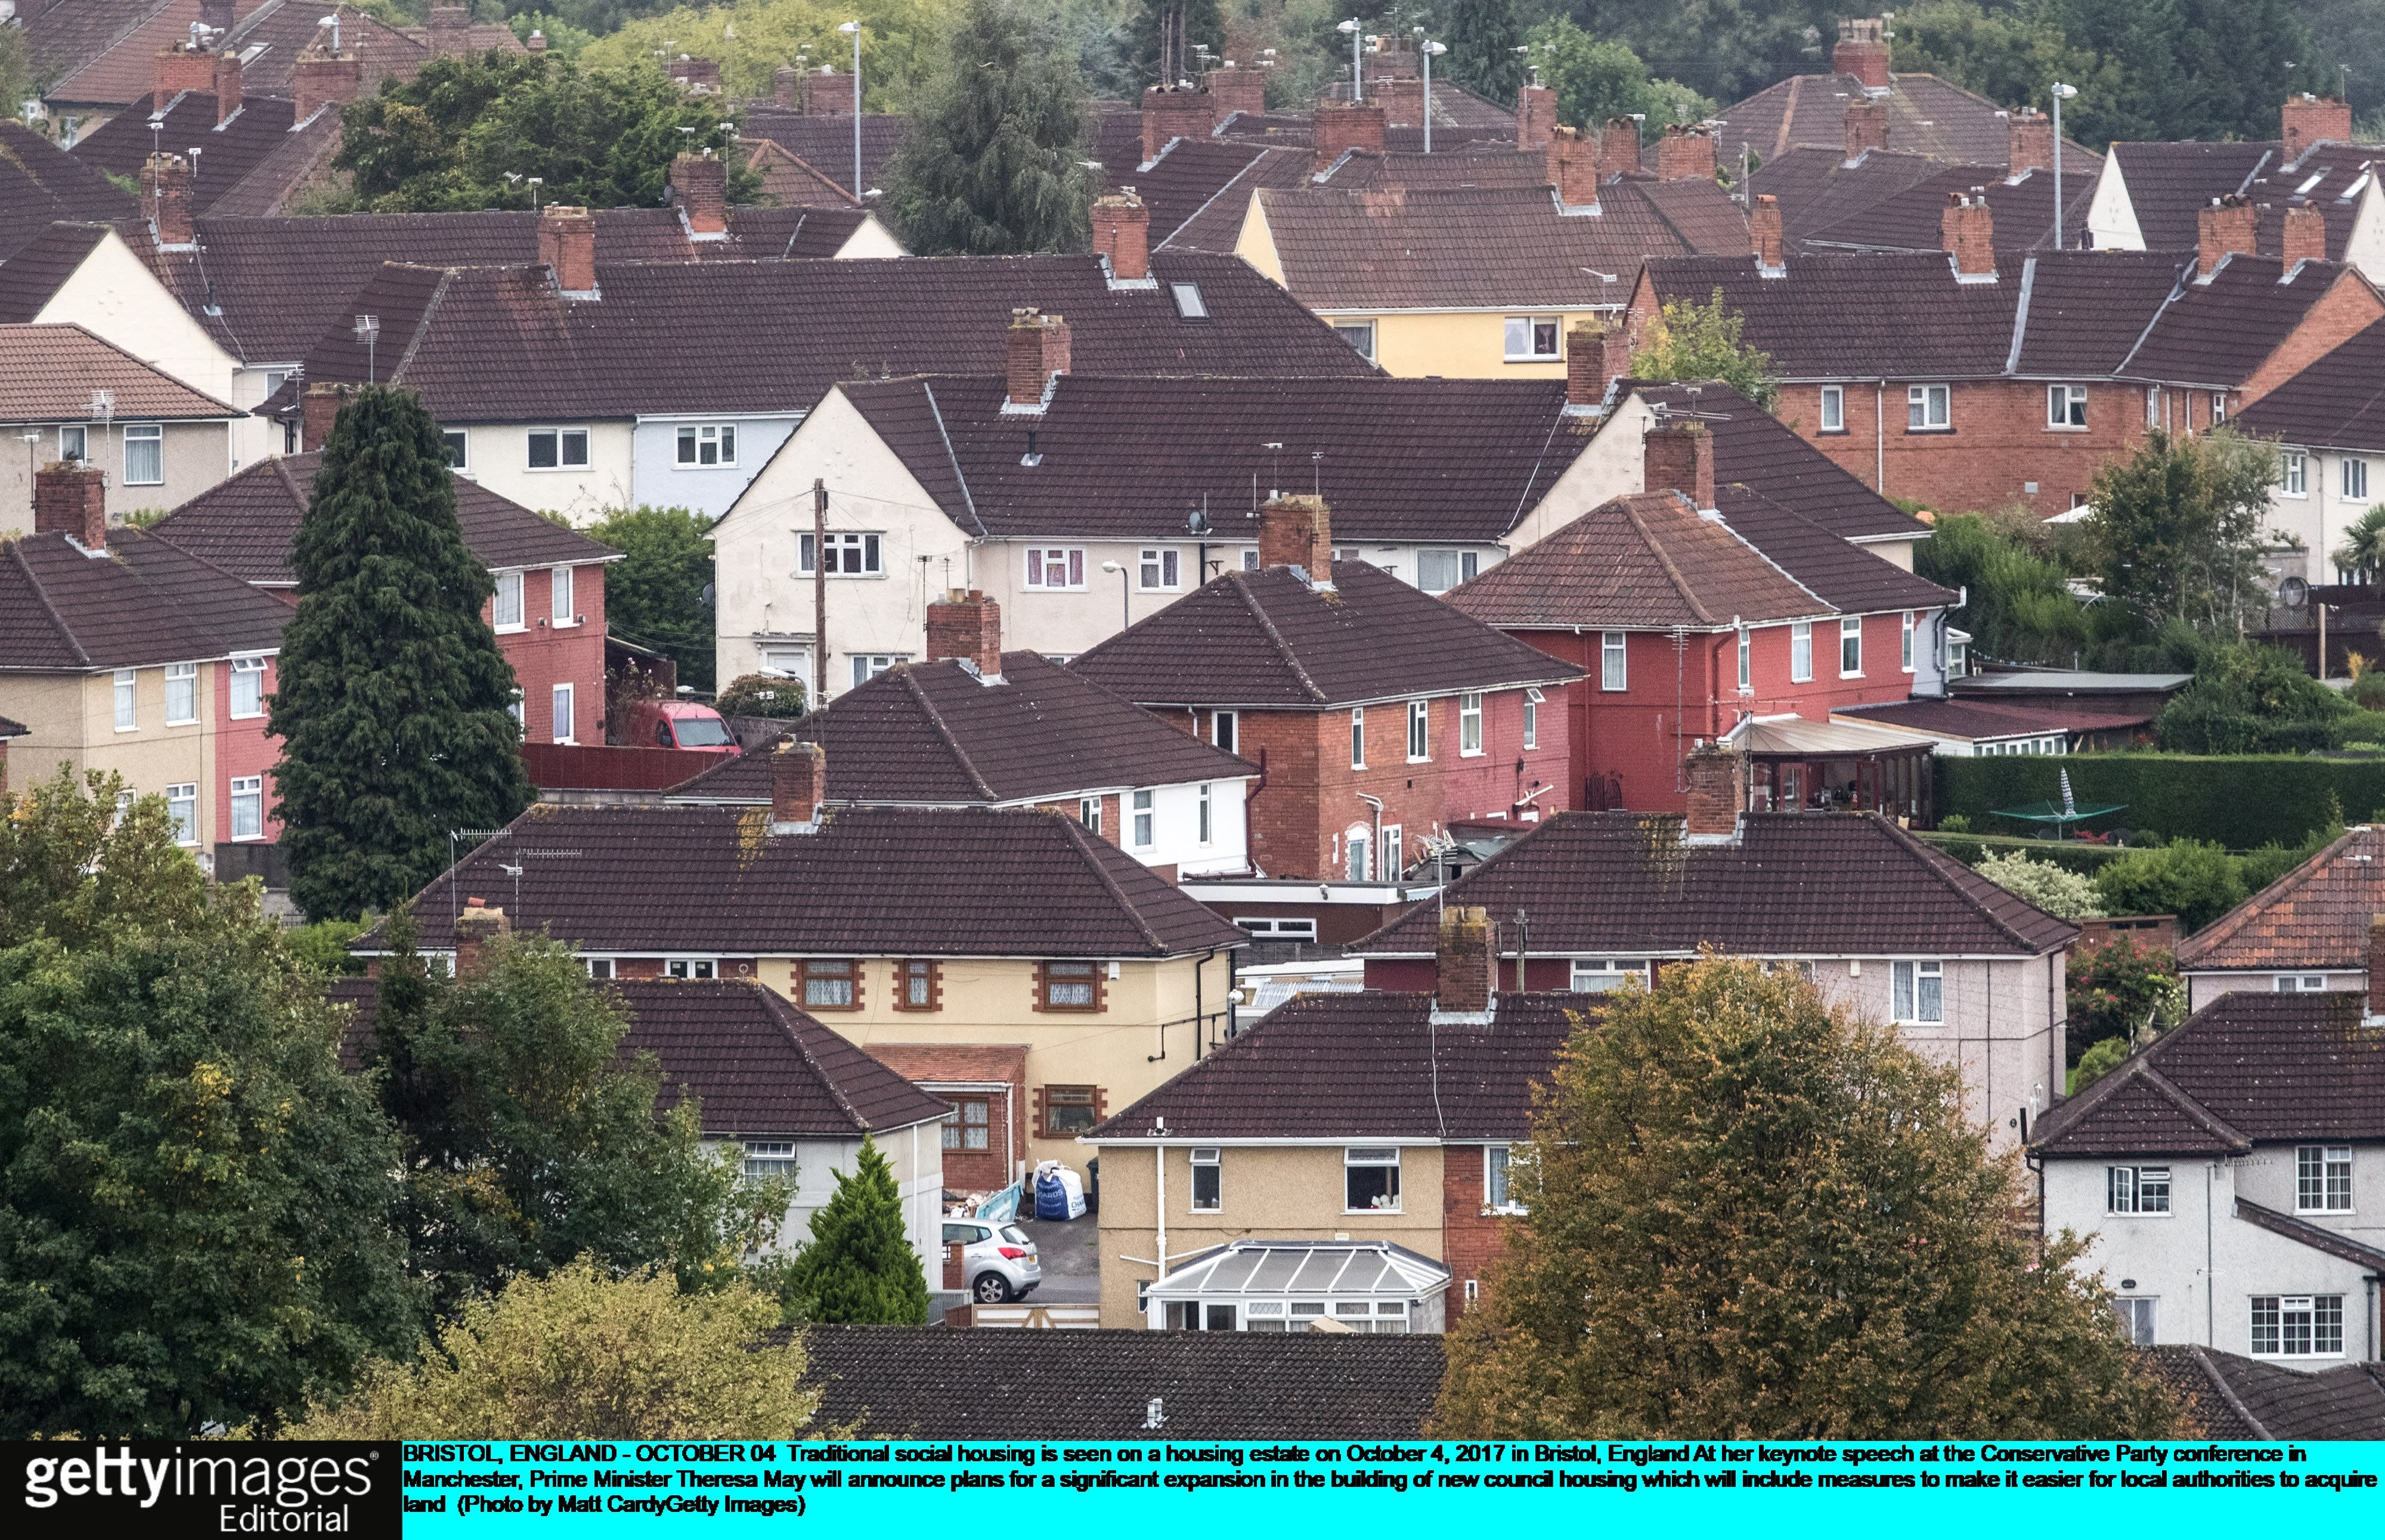 Municipal Dreams: The rise and fall of council housing by John Boughton